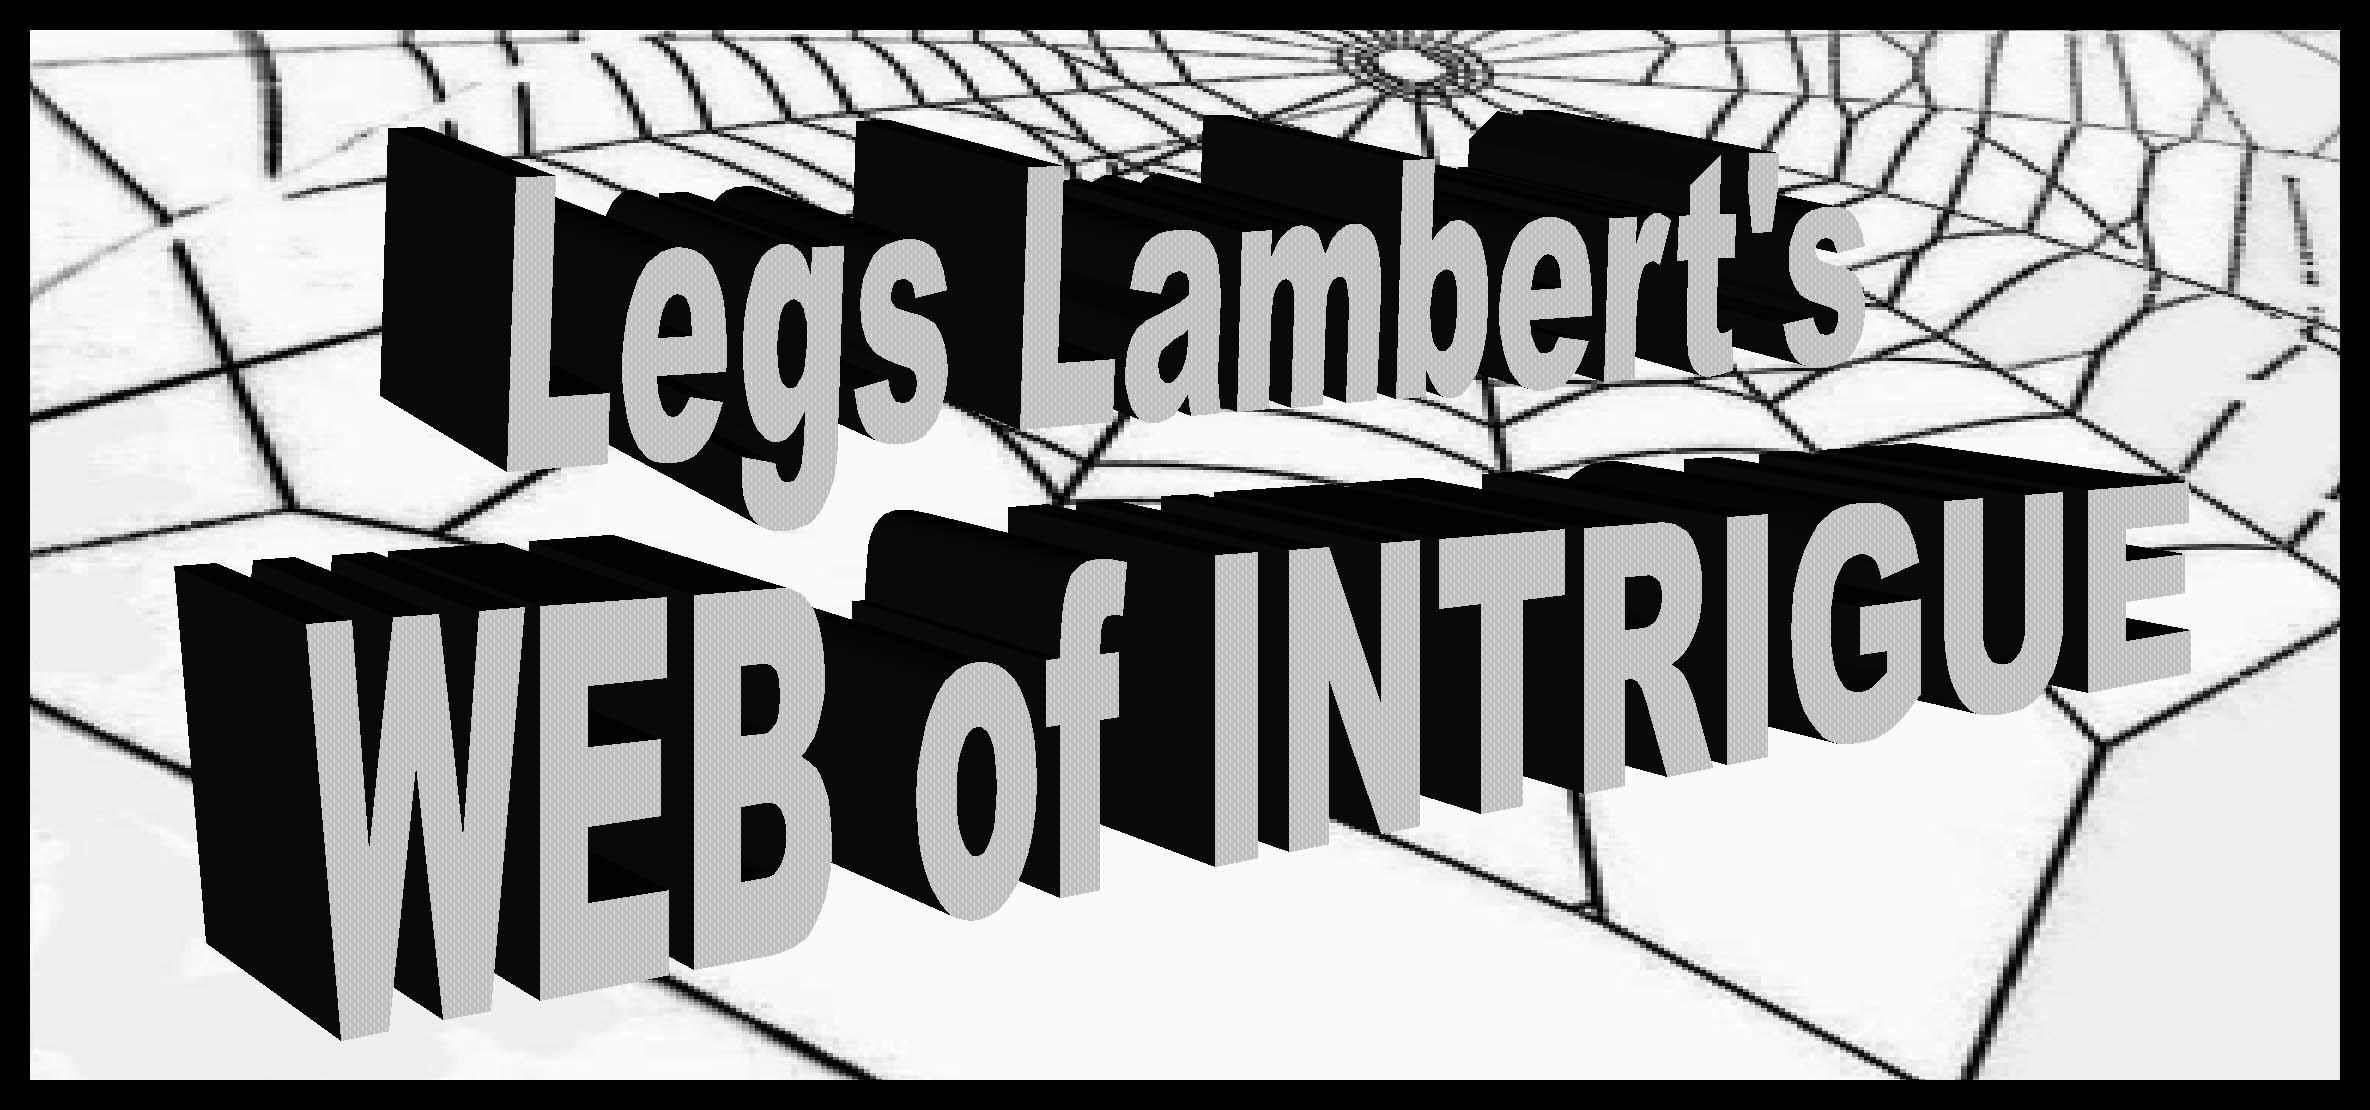 Legs Lambert's Web of Intrigue